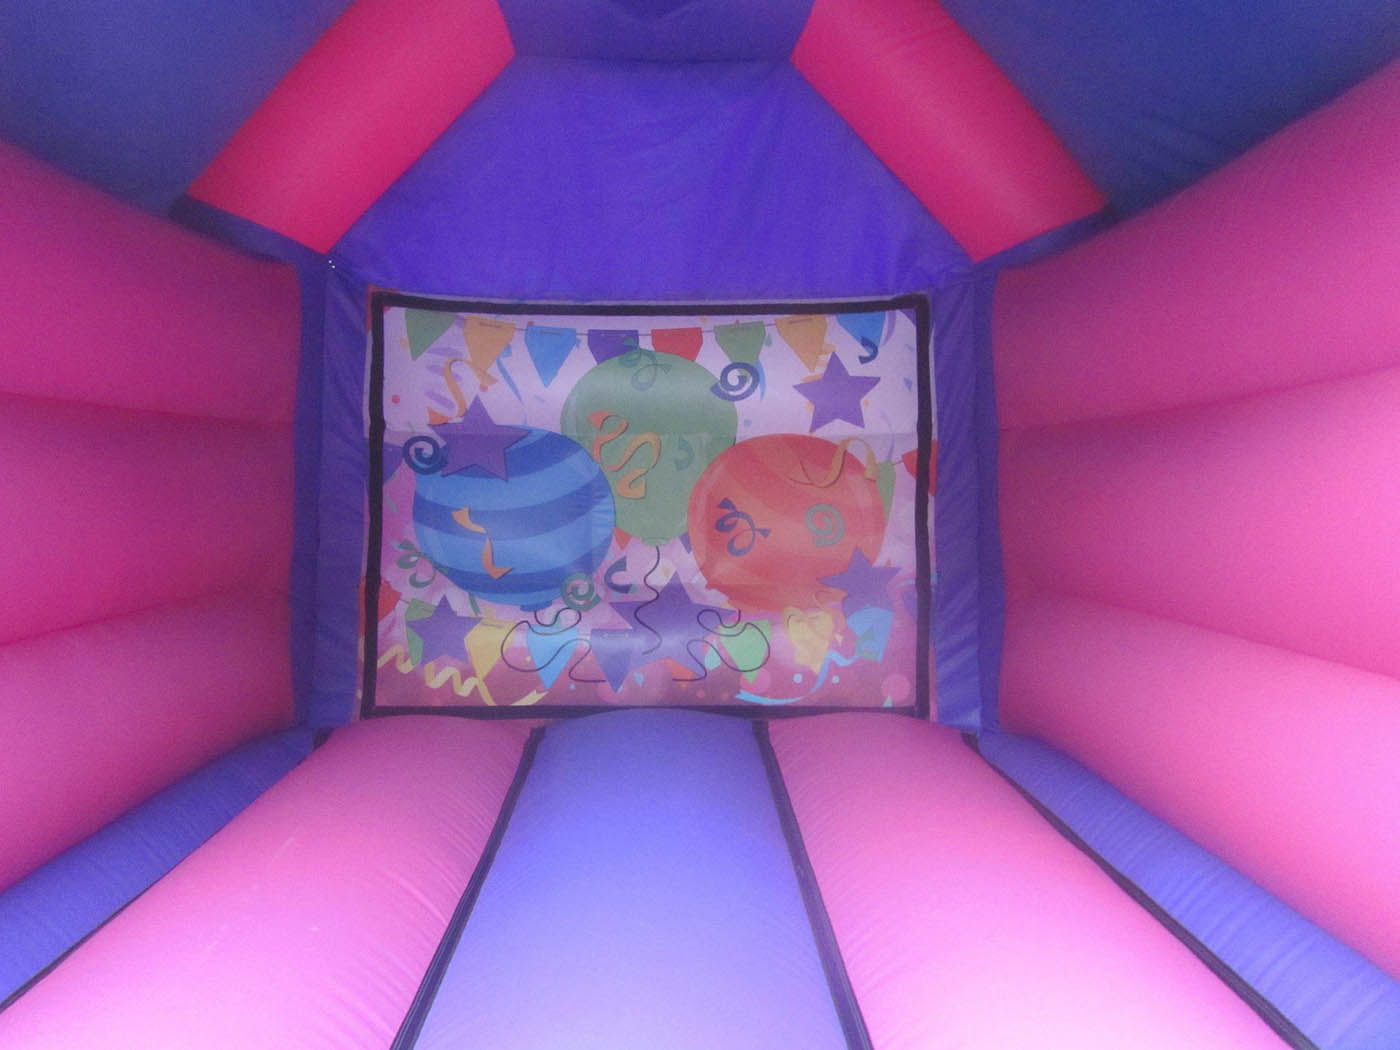 Pink Party Bouncy Castle Artwork